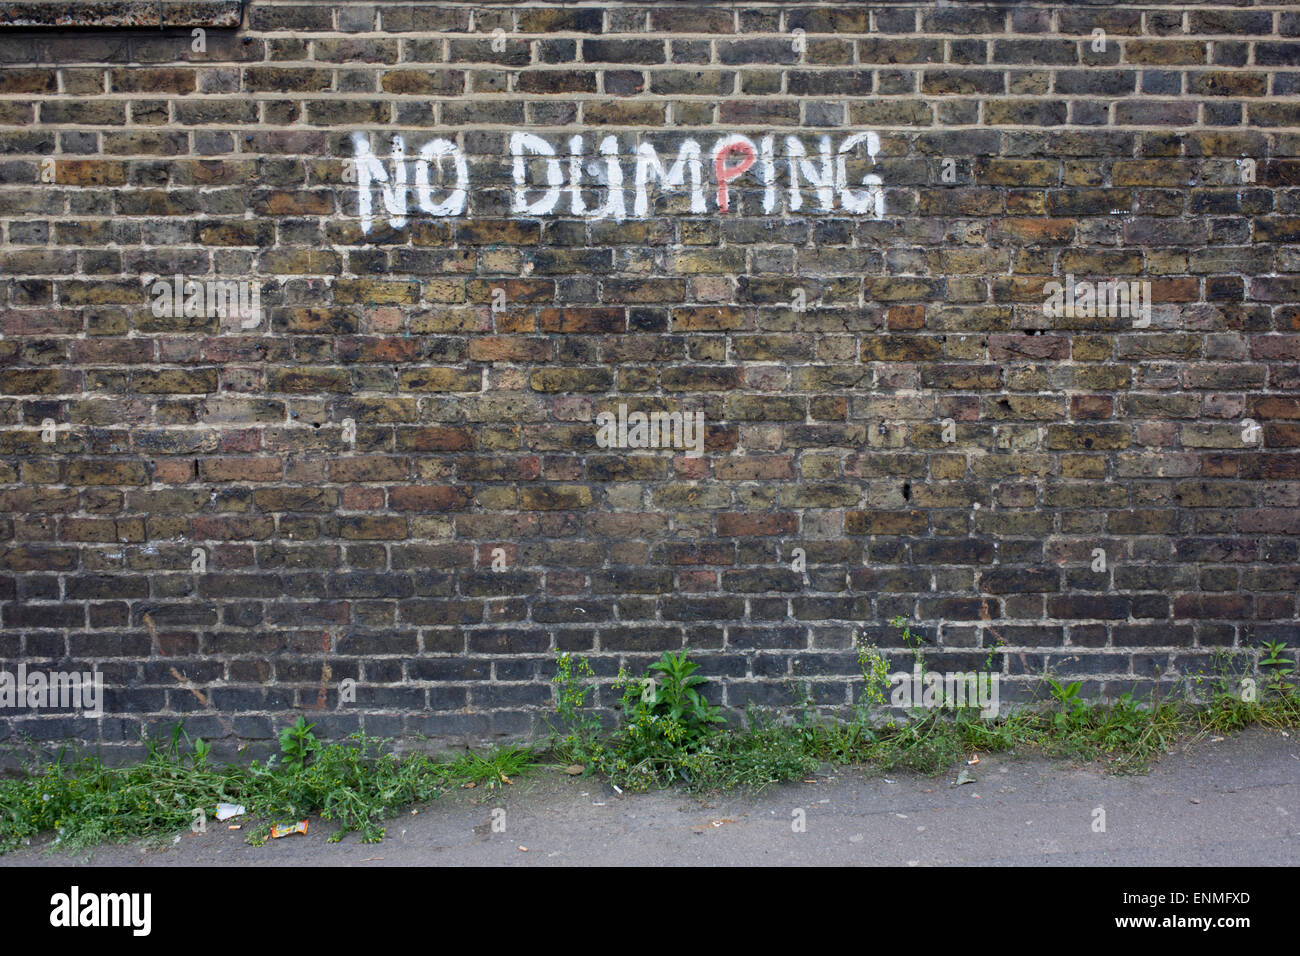 No Dumping writing painted on an urban brick wall in the south London borough of Lewisham, SE5. - Stock Image